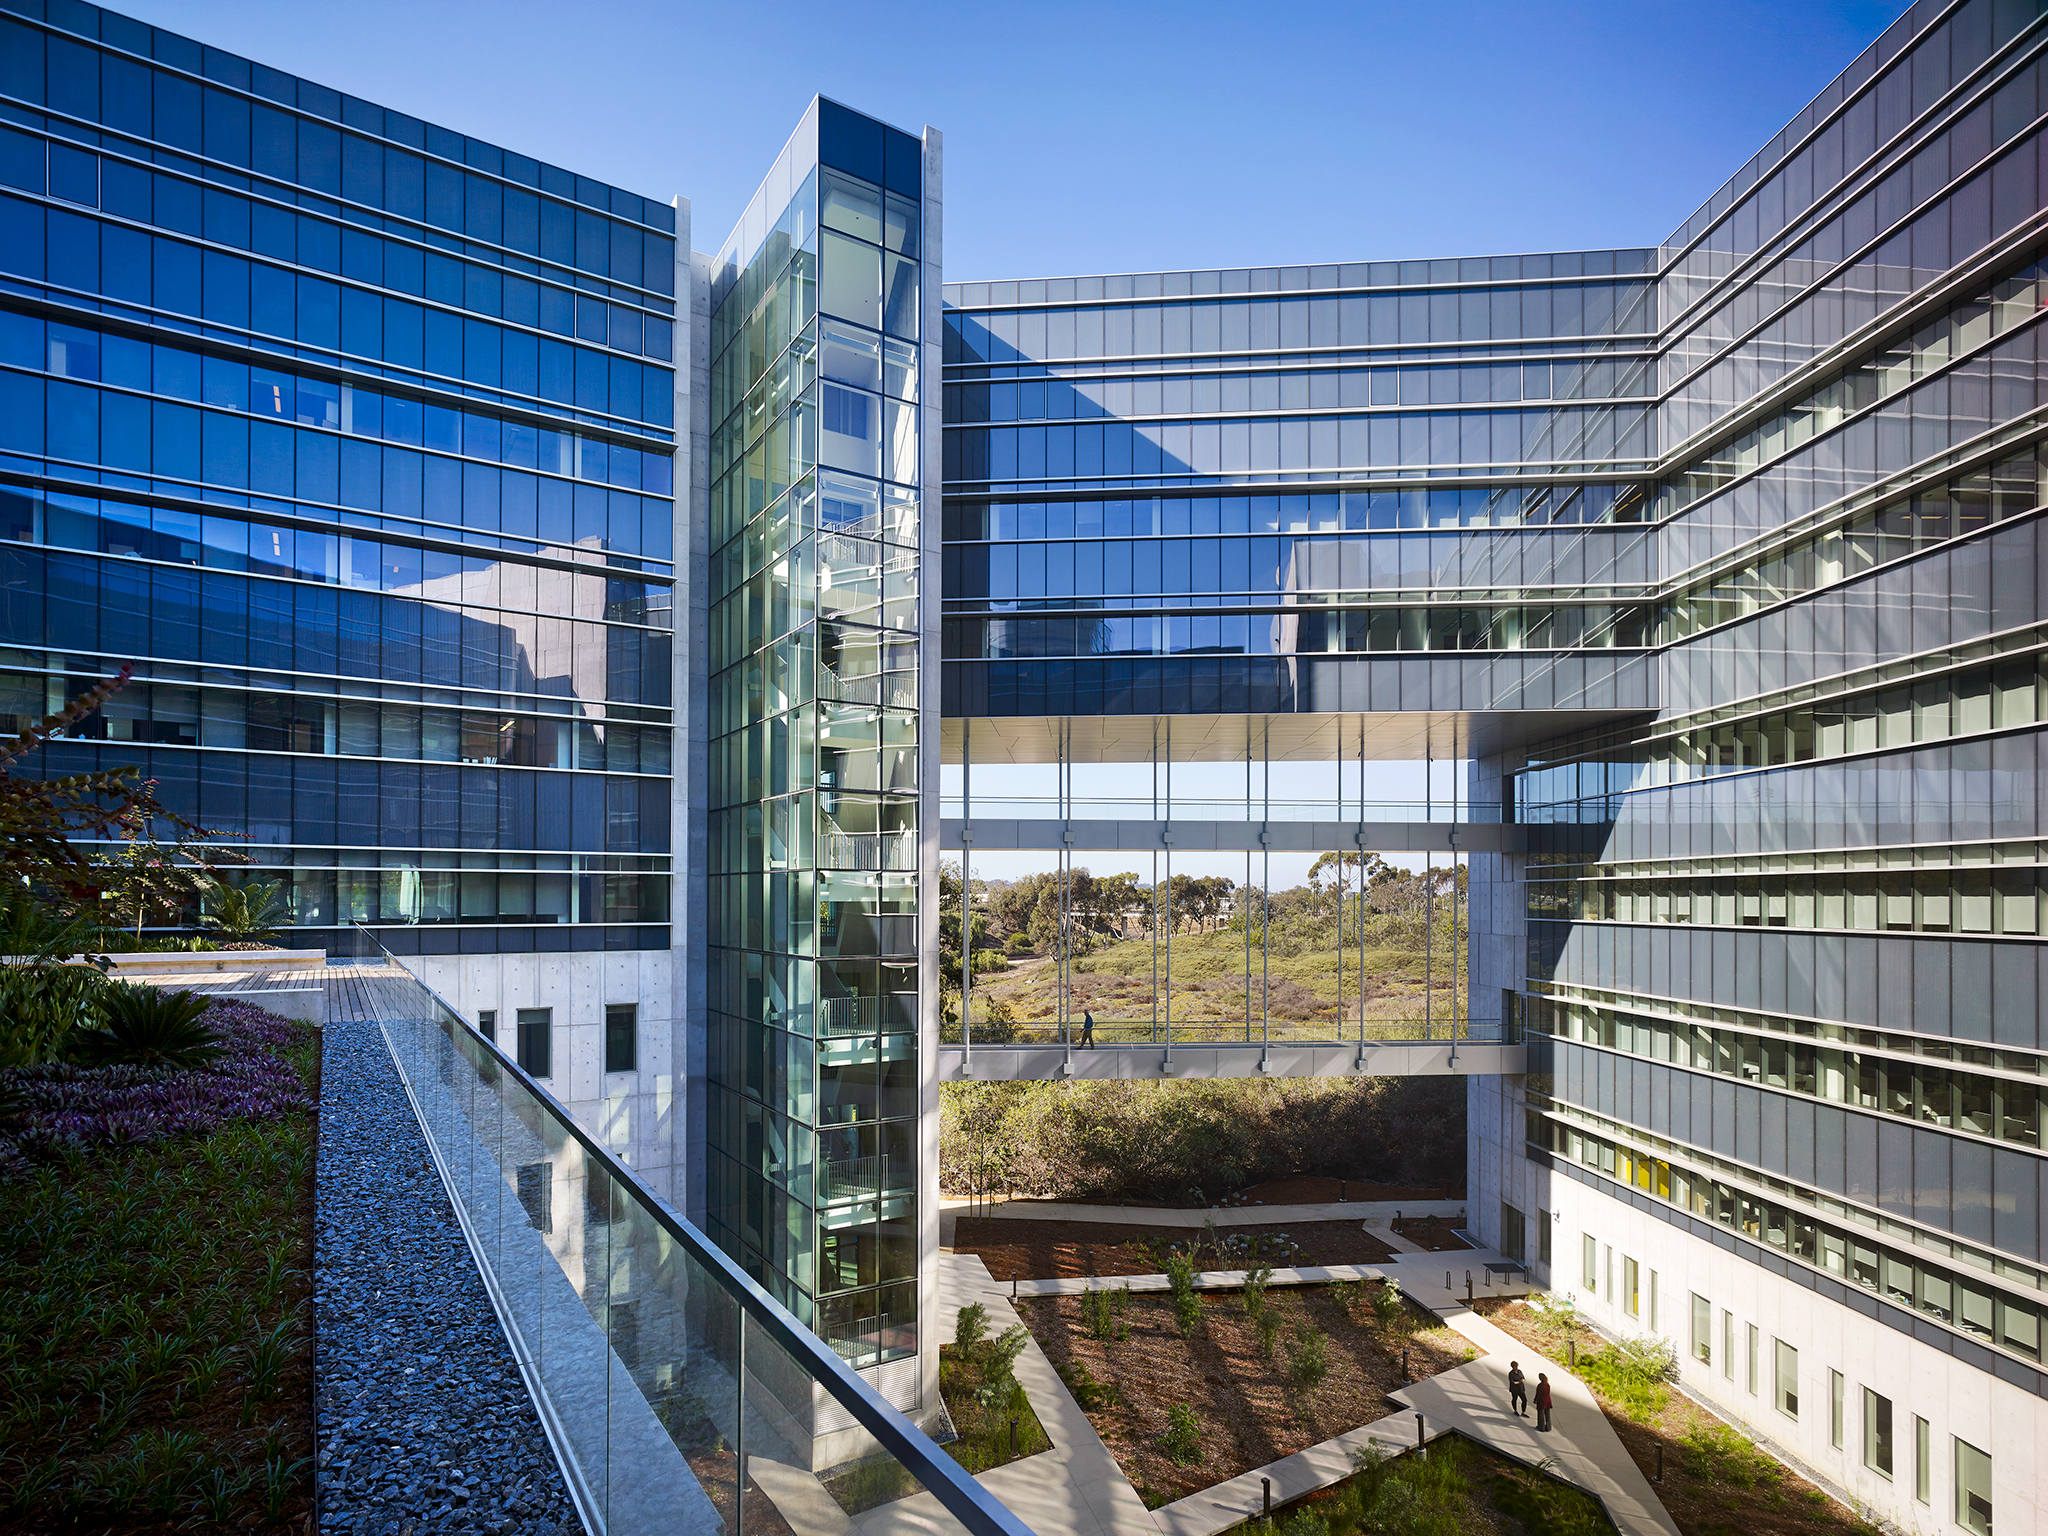 Clinical and Translational Research  University of San Diego  ZGF Architects  La Jolla, California      Return to Projects